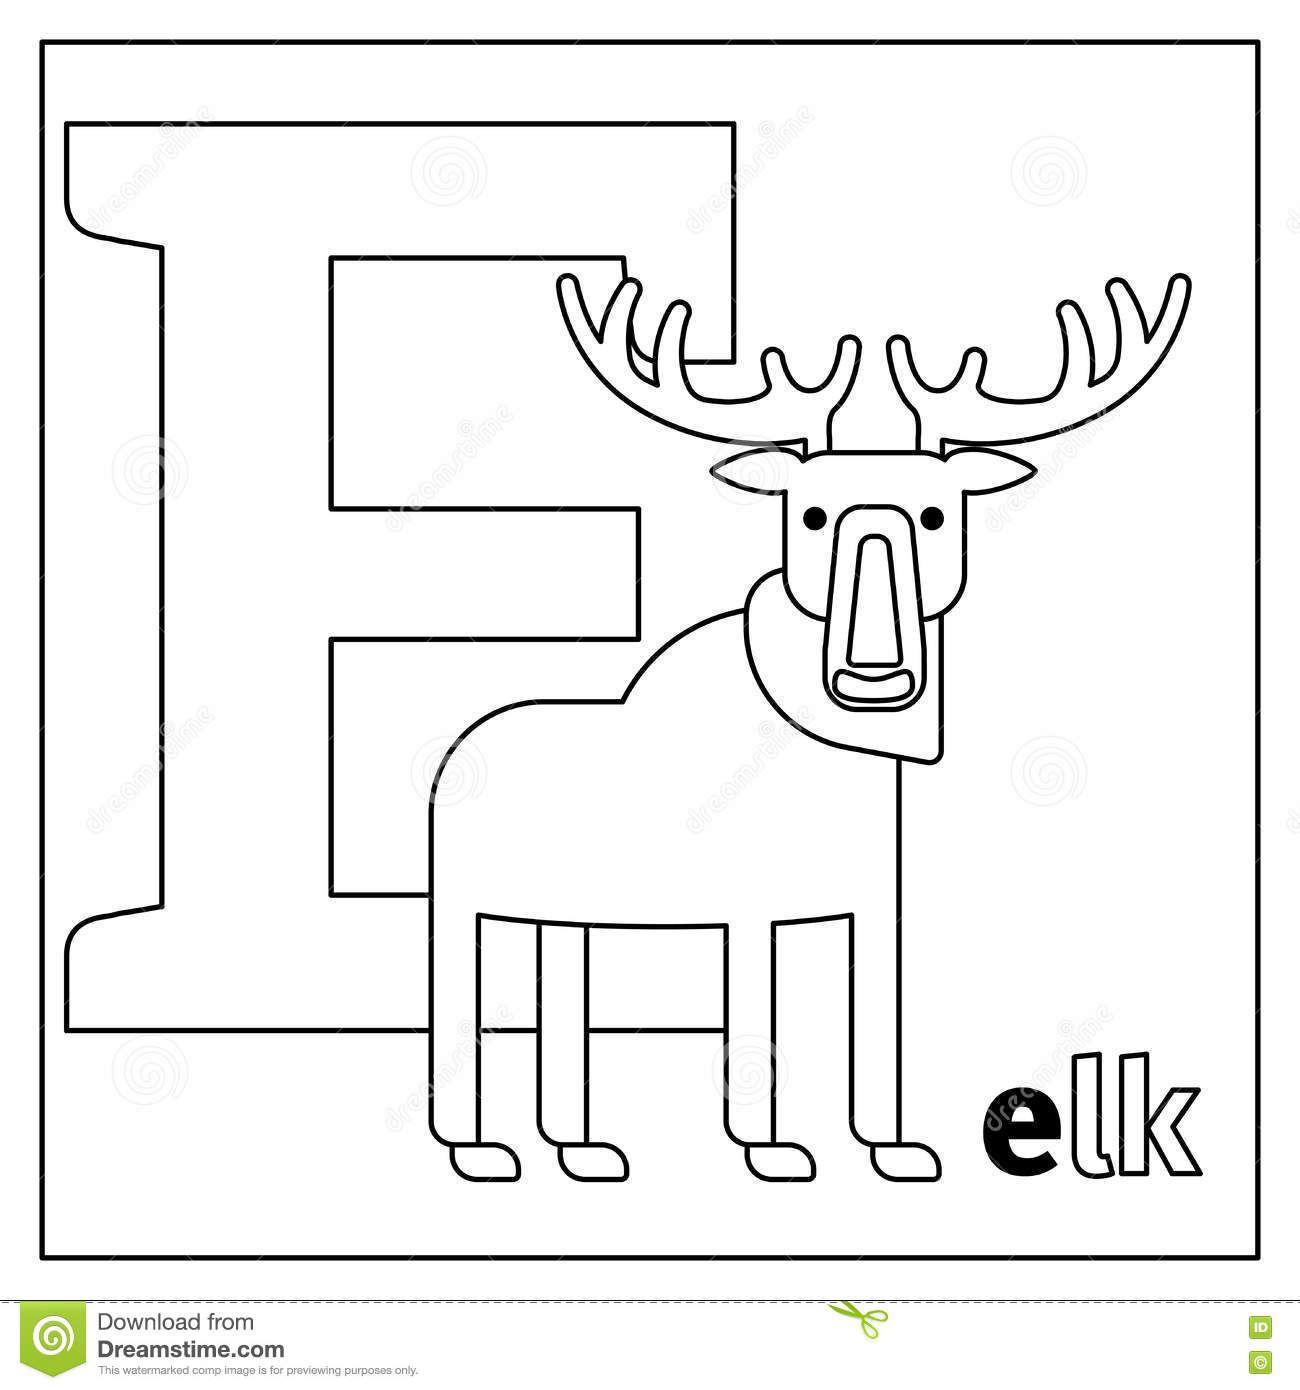 Elk, Letter E Coloring Page Stock Vector - Illustration of language ...